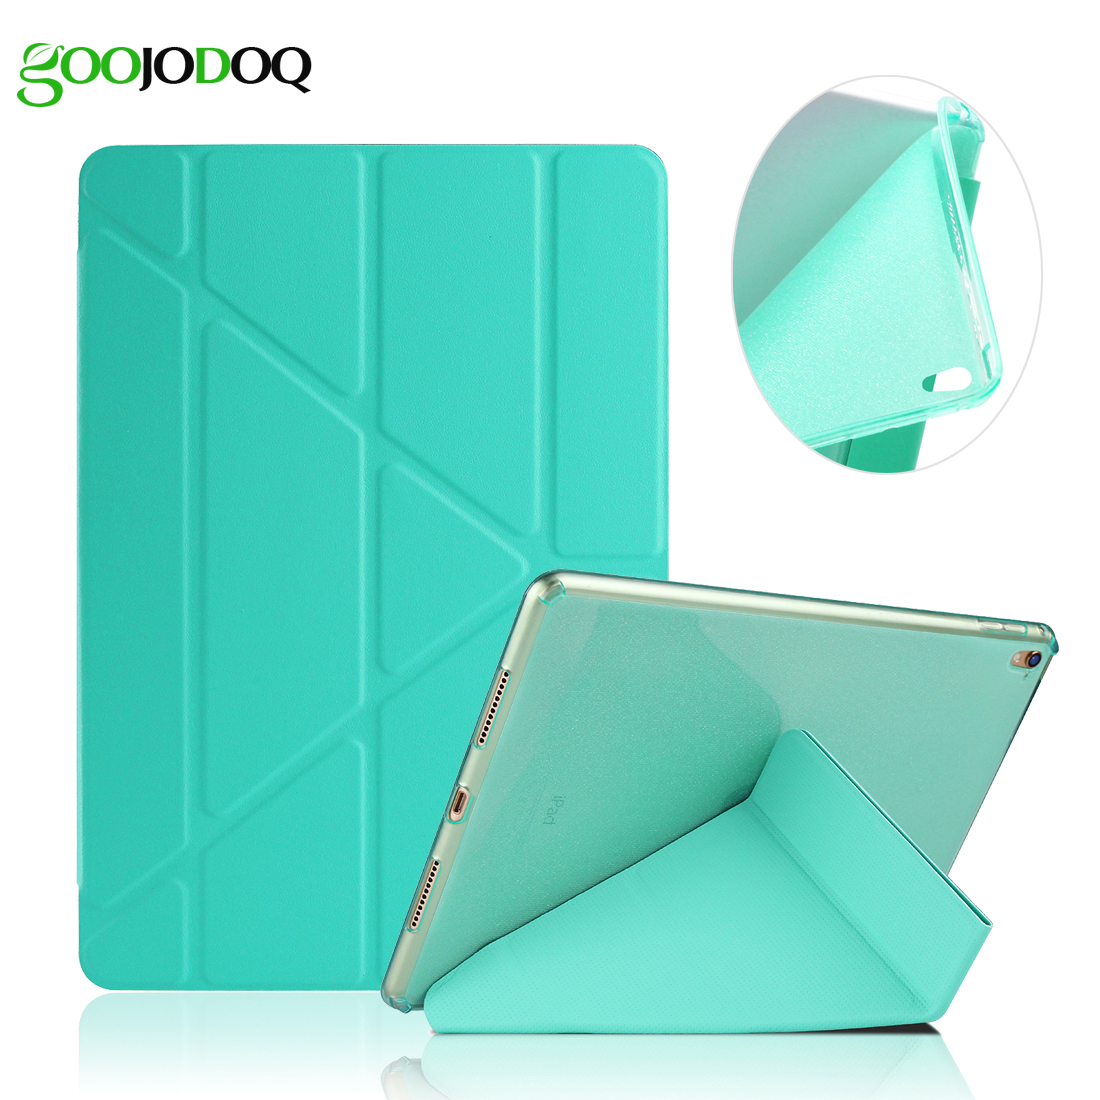 Case For iPad Pro 9.7 / iPad 2 3 4 PU Leather Smart Cover, [Multiple Stand + Glitter Silicone Soft Back] for iPad 4 Case soft silicone tpu translucent back cover for ipad air 2 air2 trifold stand smart auto on off premium pu leather slim fit case